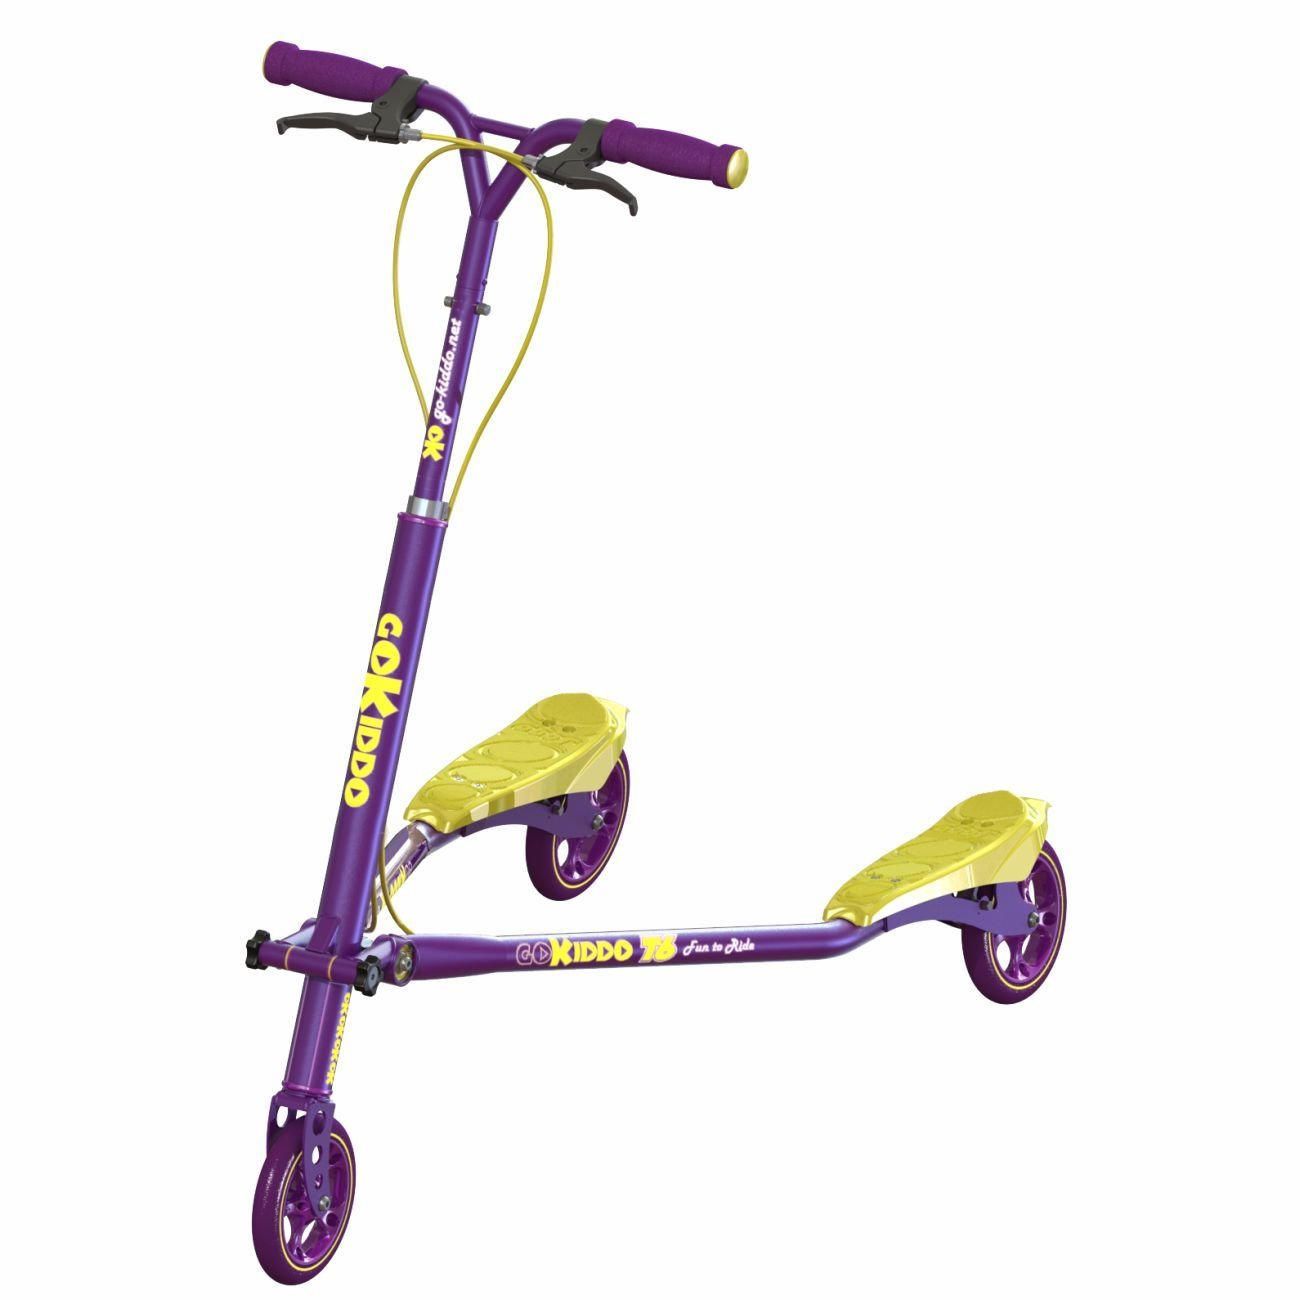 Trikke Go-Kiddo T6 Carving Scooter, Purple GK-T6-PP